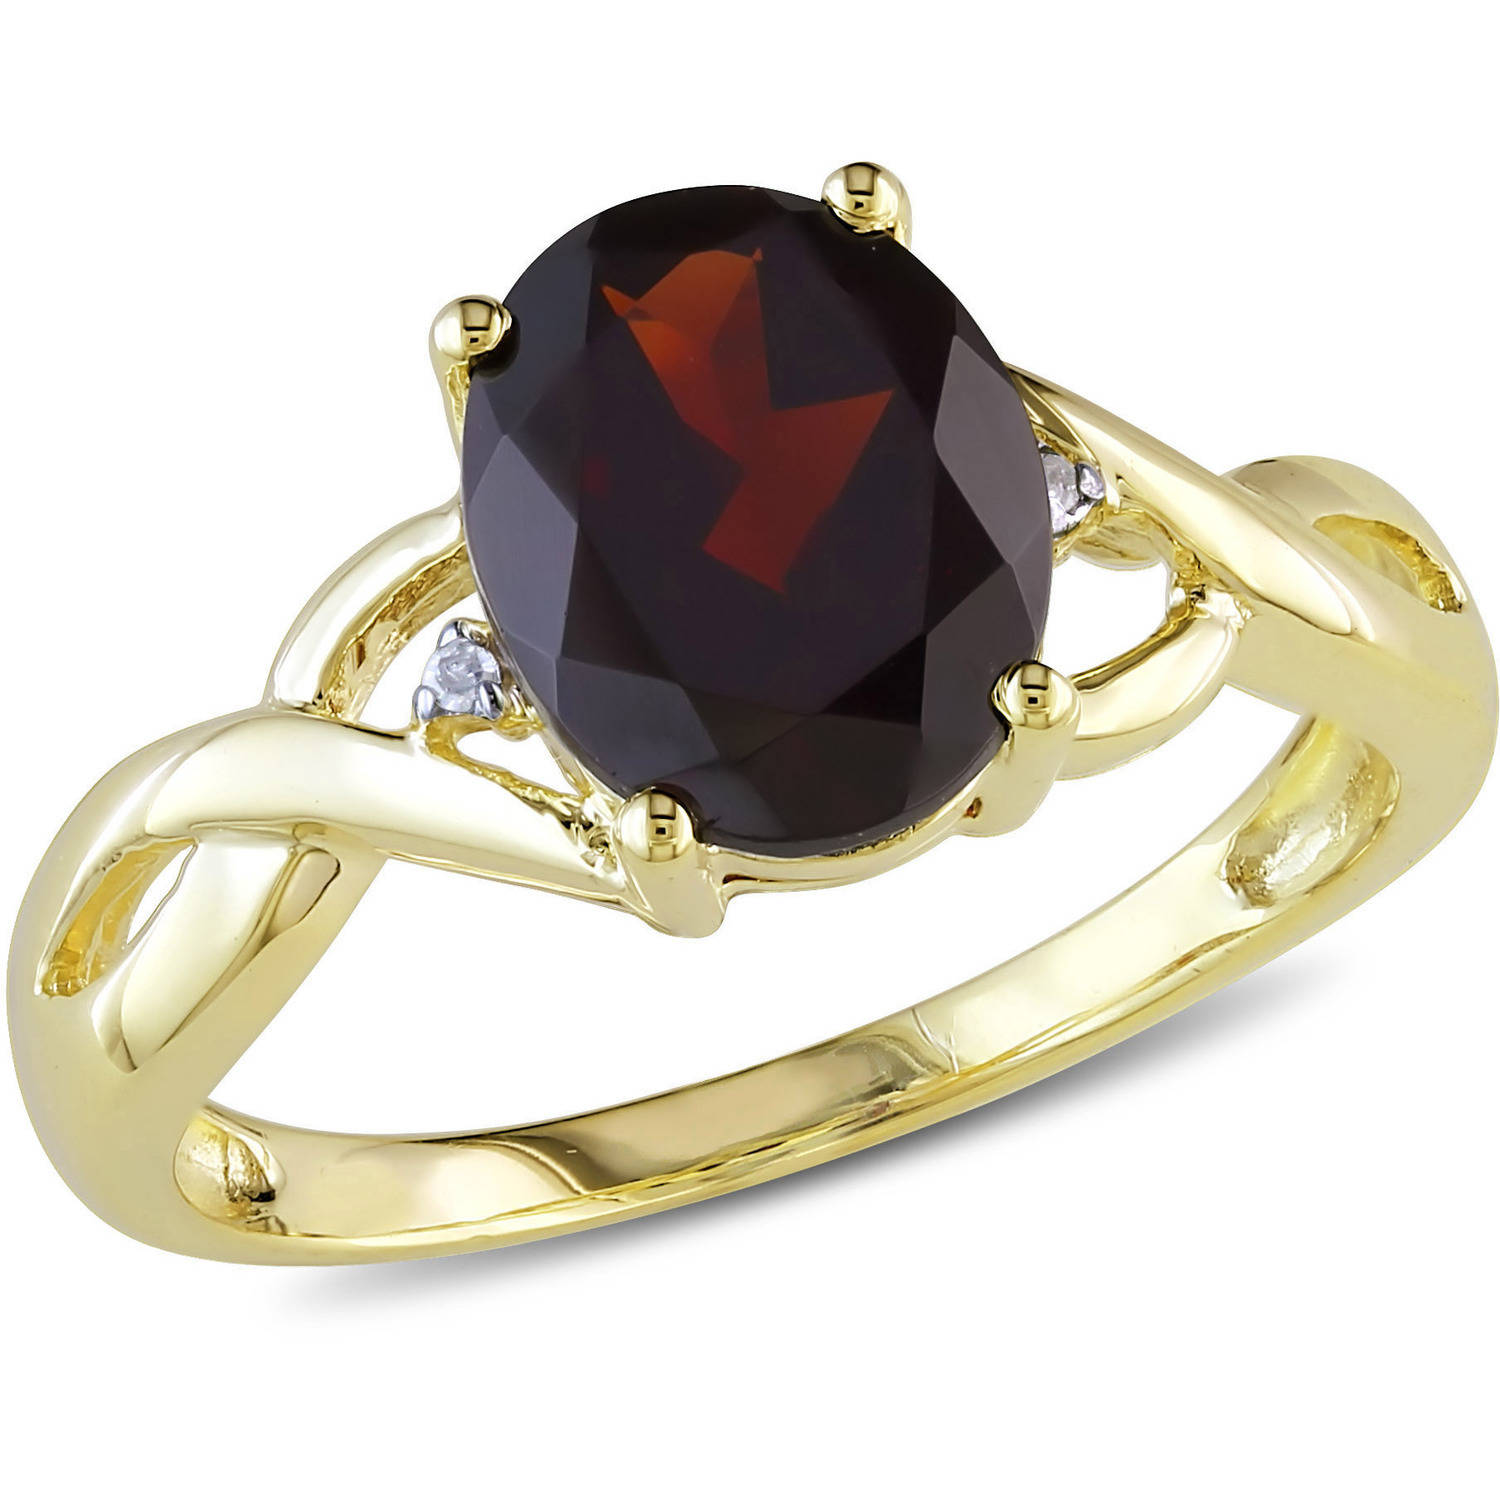 Tangelo 3 Carat T.G.W. Garnet and Diamond-Accent 10kt Yellow Gold Cocktail Ring by Tangelo